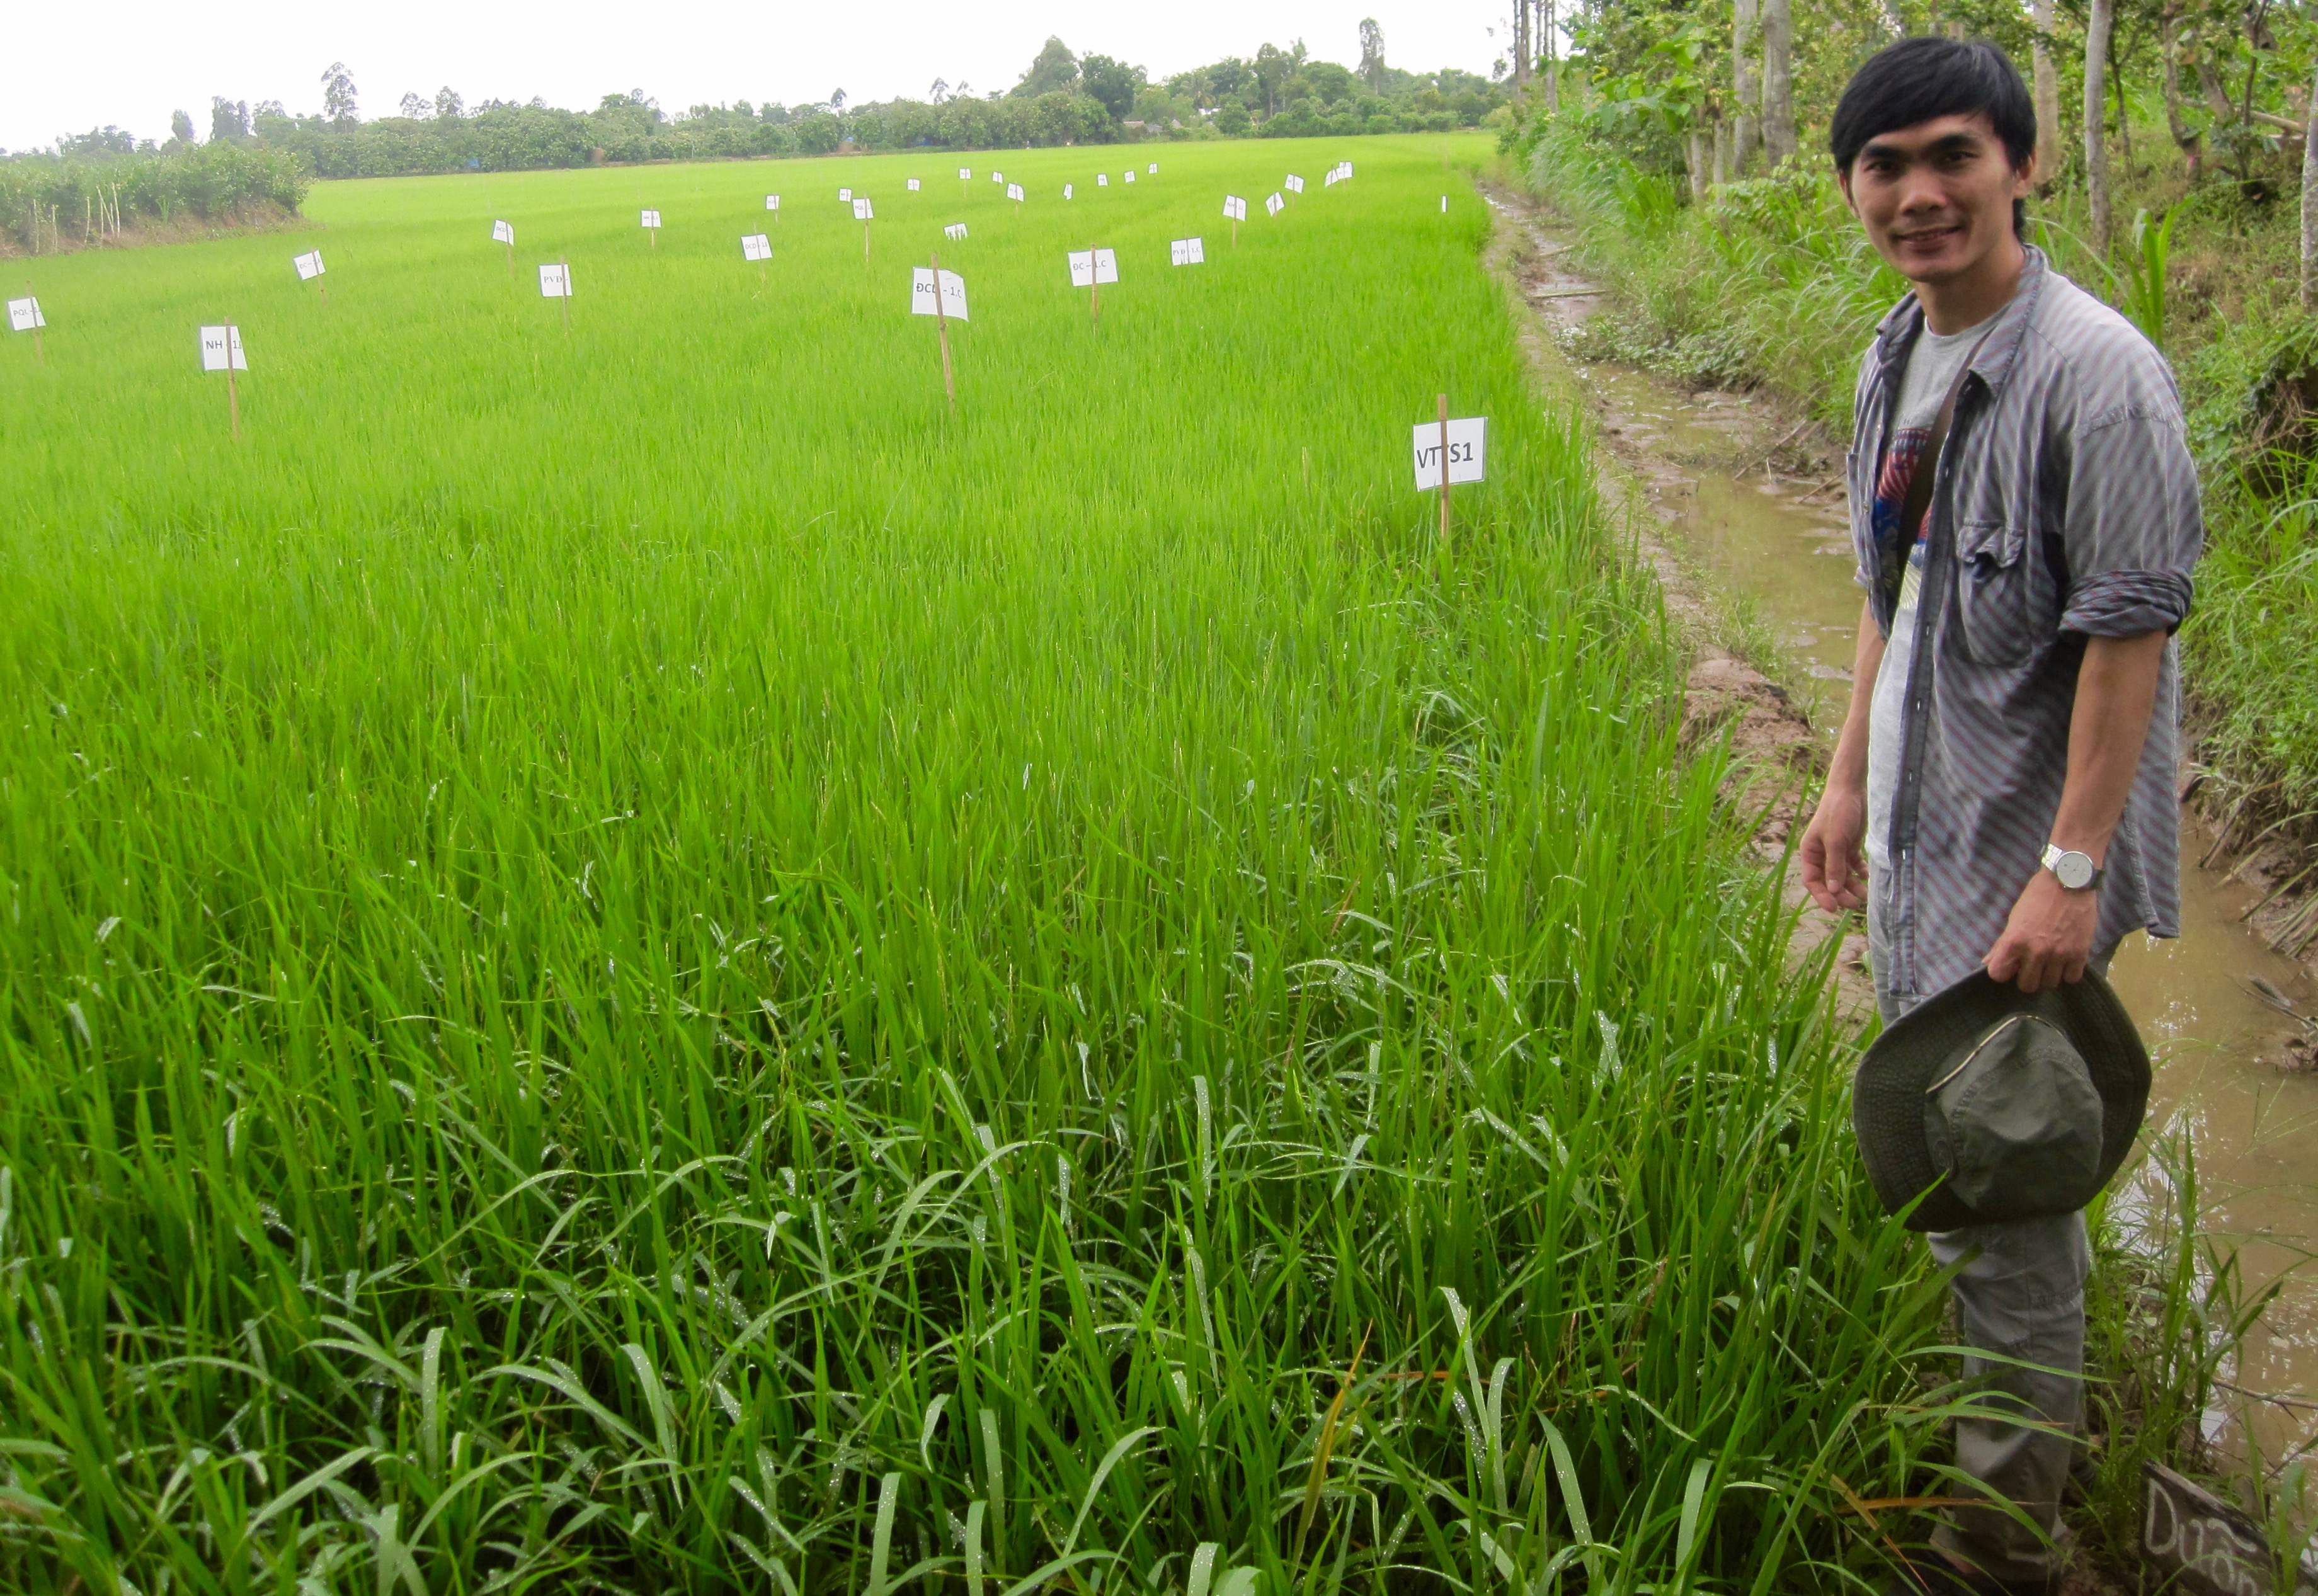 The bio control methods to prevent the wide spread rice disease x are applicable in any tropical developing country in Asia, Africa or Latin America.